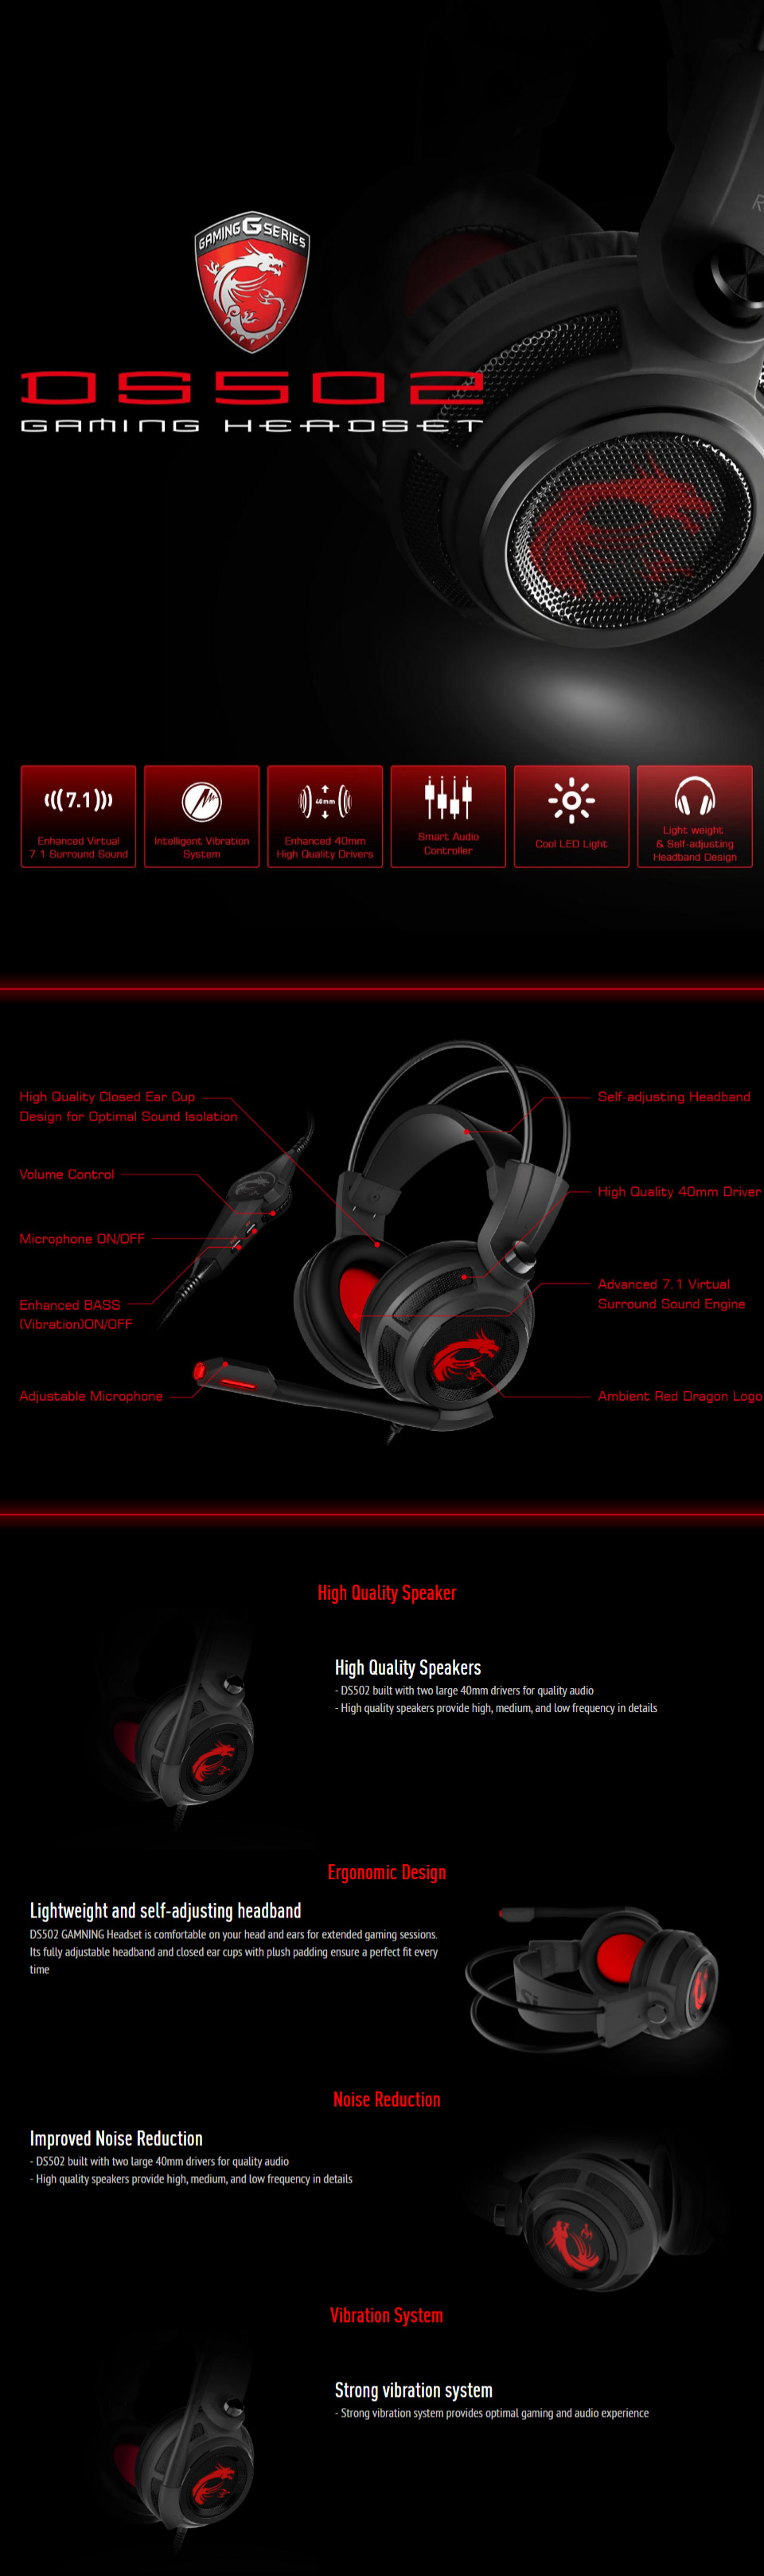 MSI DS502 Gaming Headset with Microphone Enhanced Virtual 7.1 Surround Sound